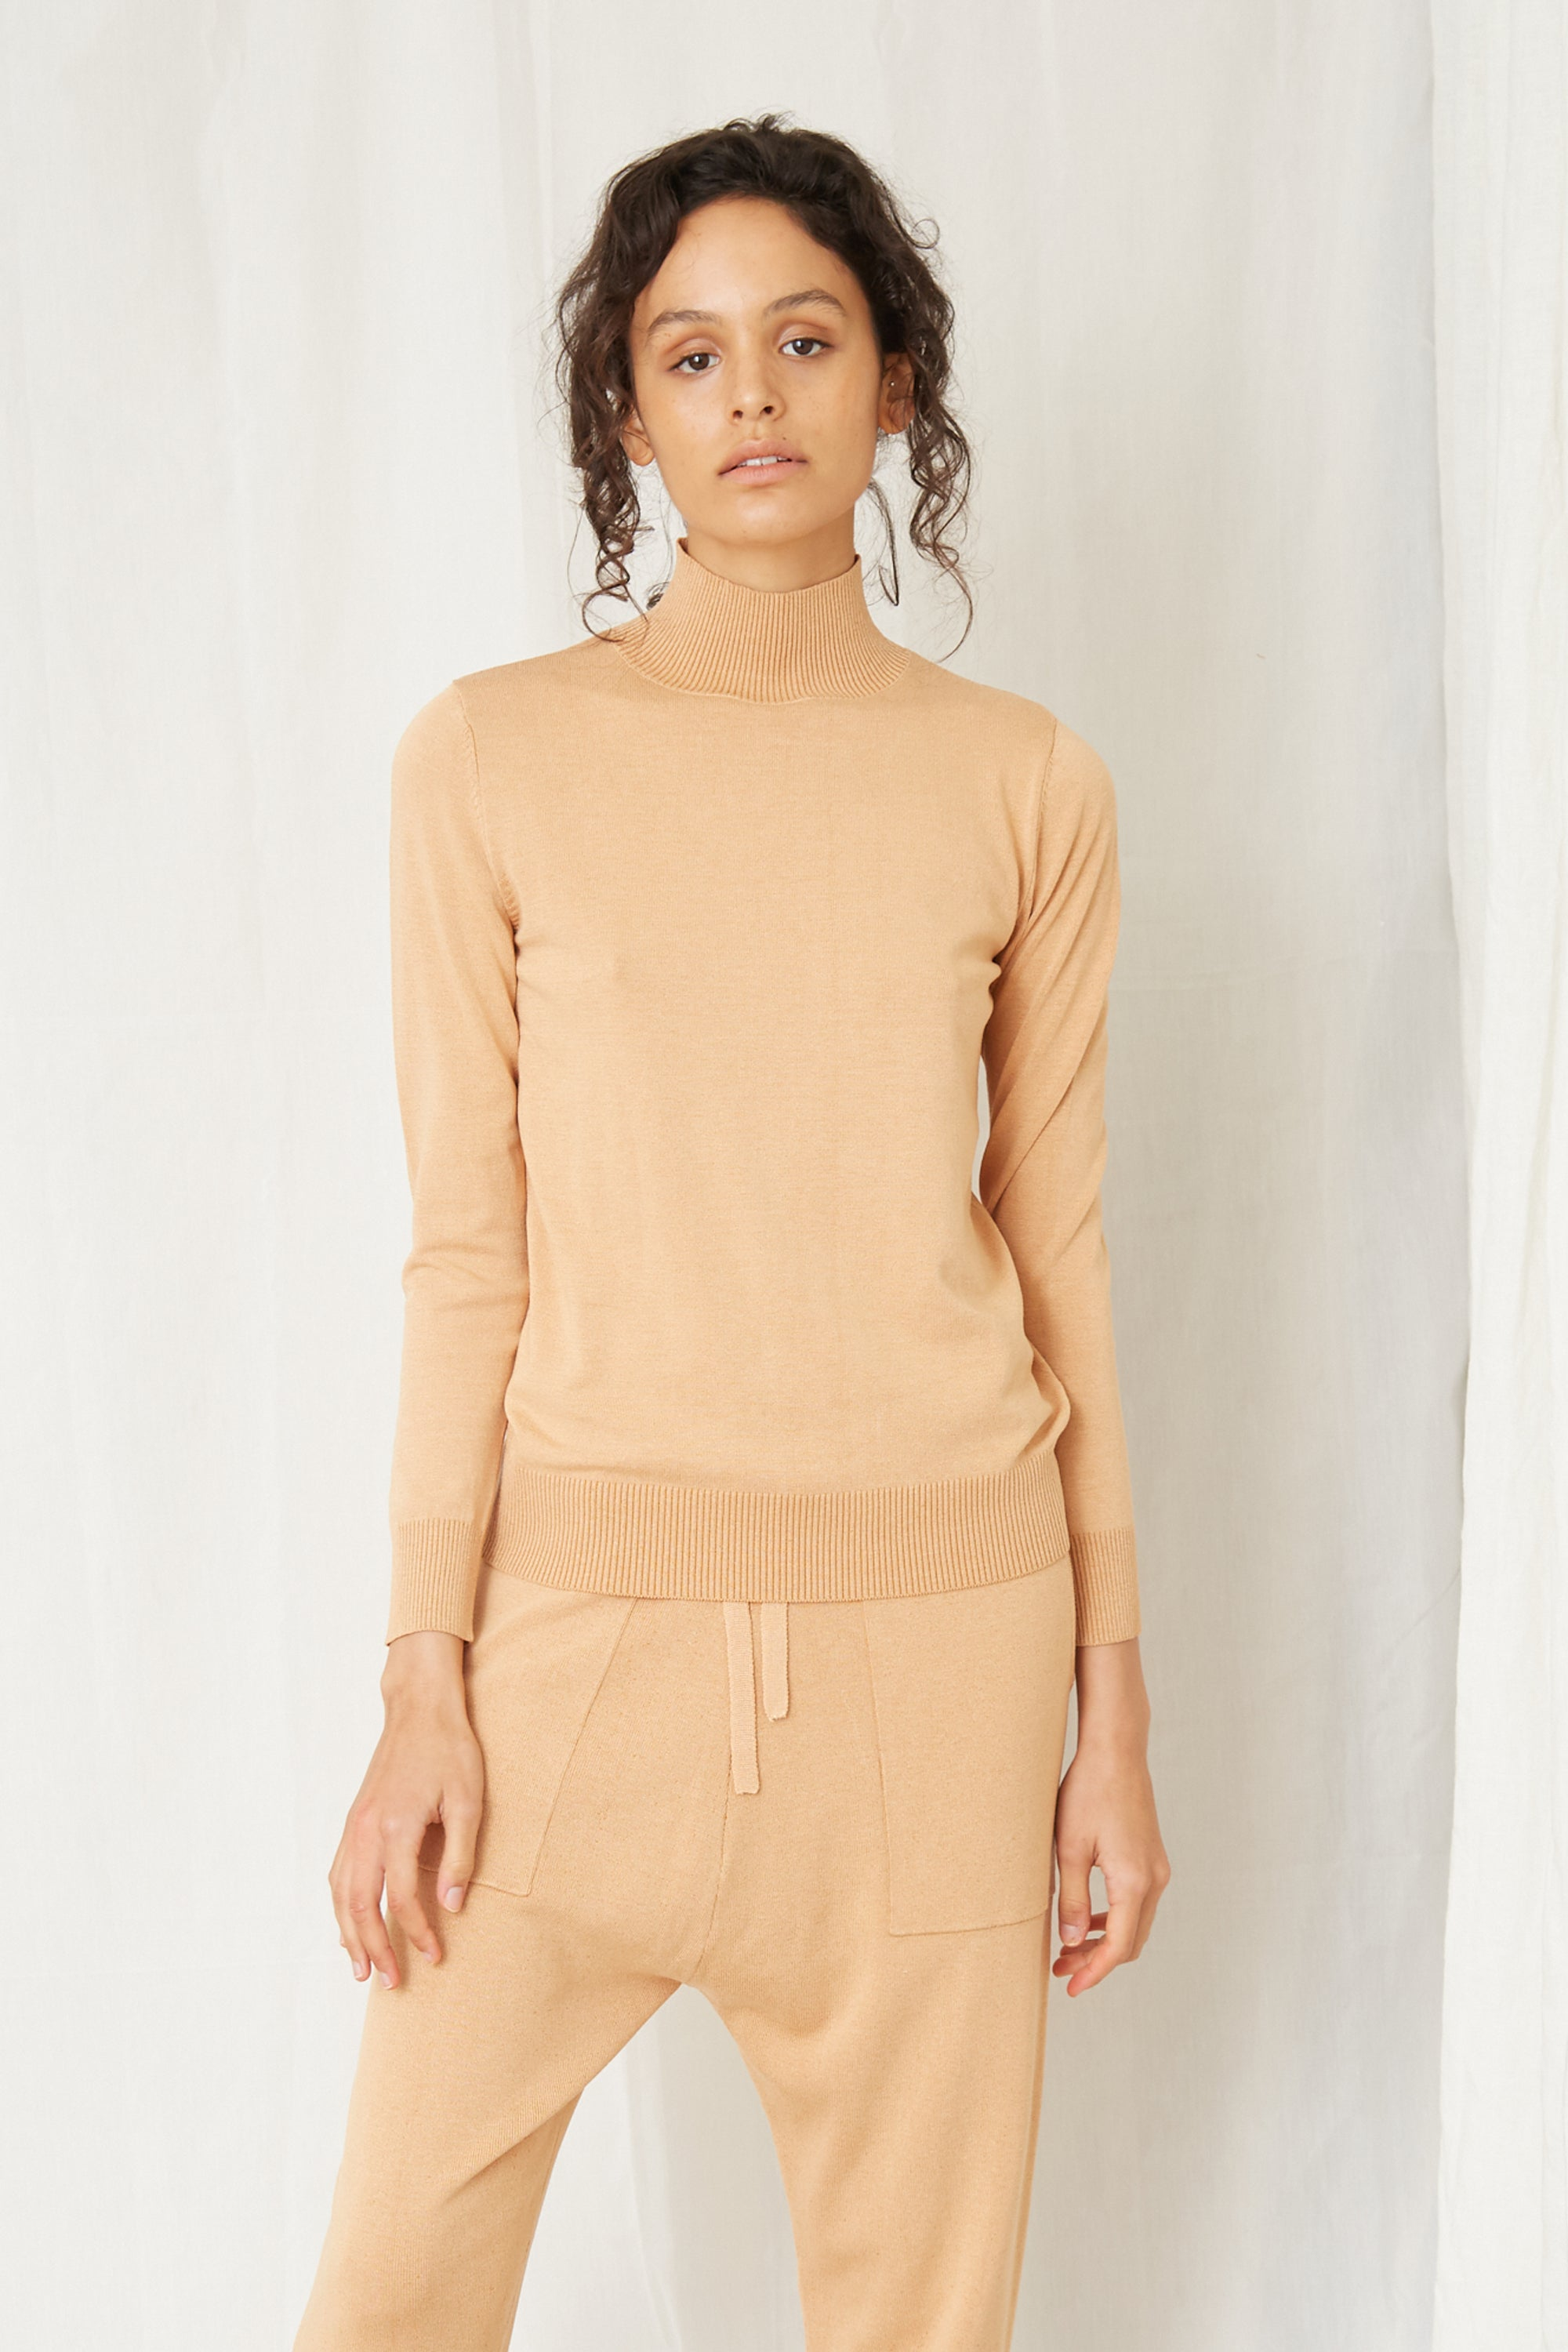 FINE DAYS KNIT TURTLENECK | CAMEL